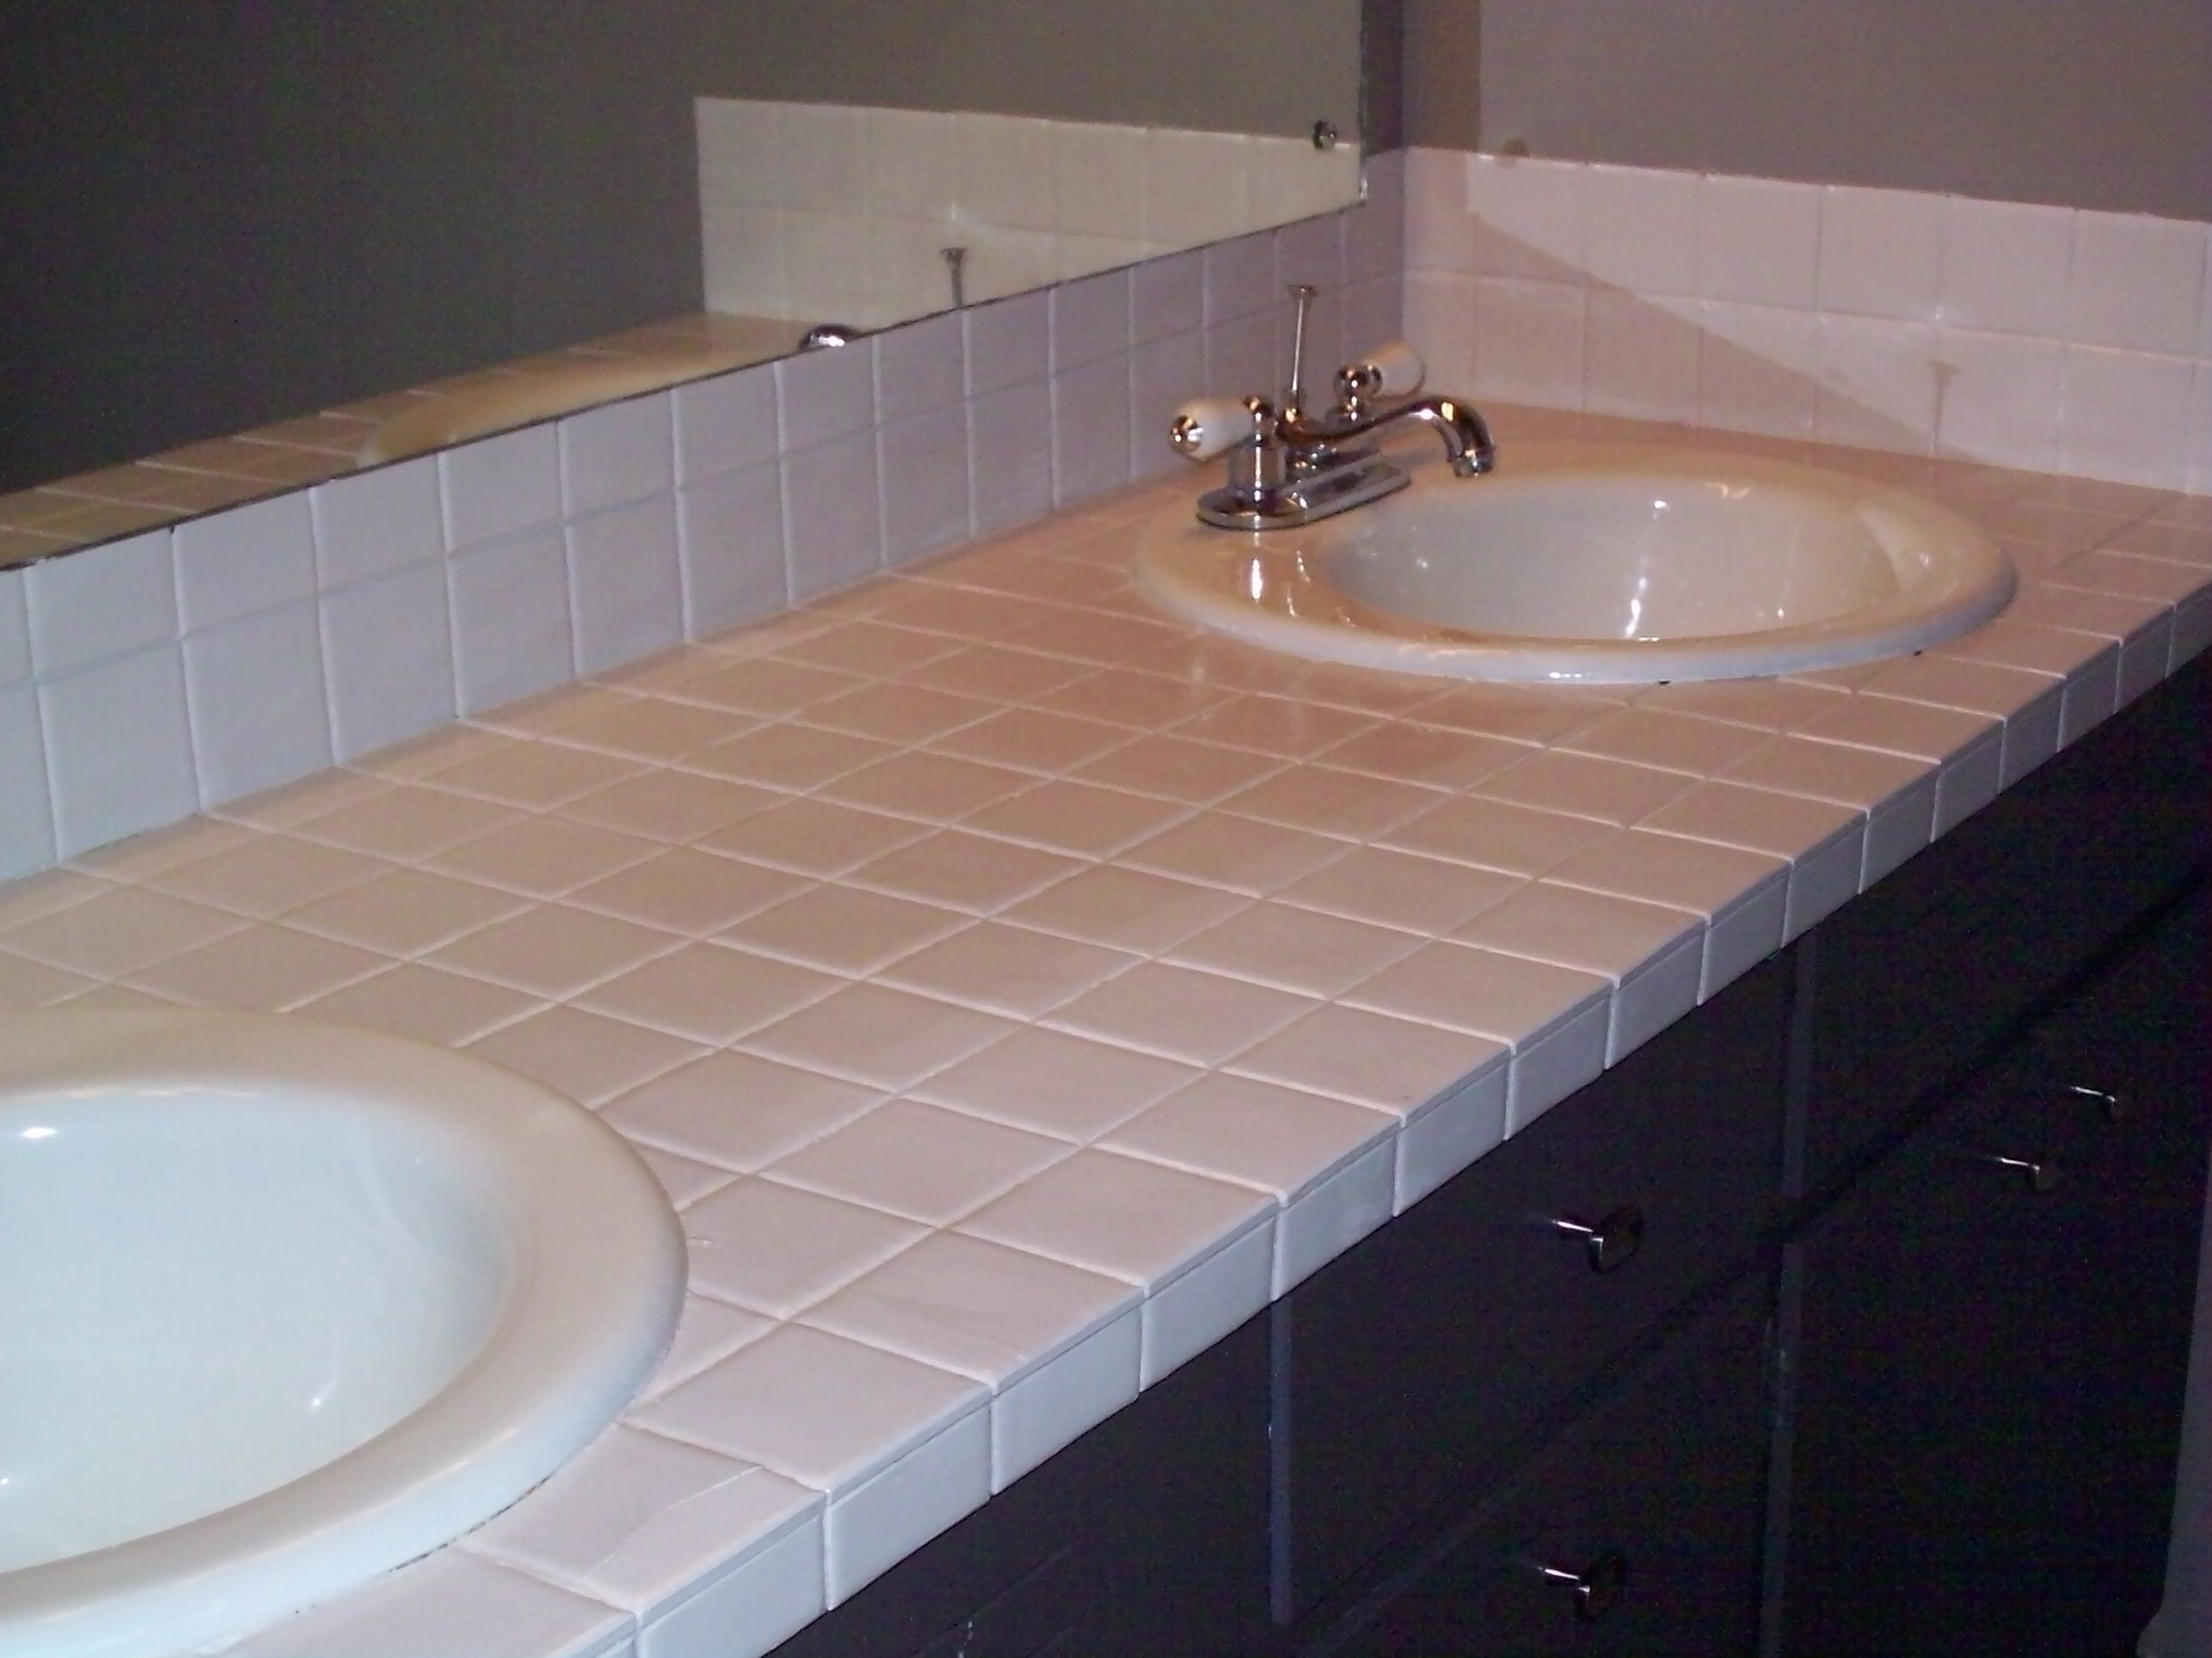 How to paint ceramic tile countertops home pinterest tile how to paint ceramic tile countertops doublecrazyfo Gallery